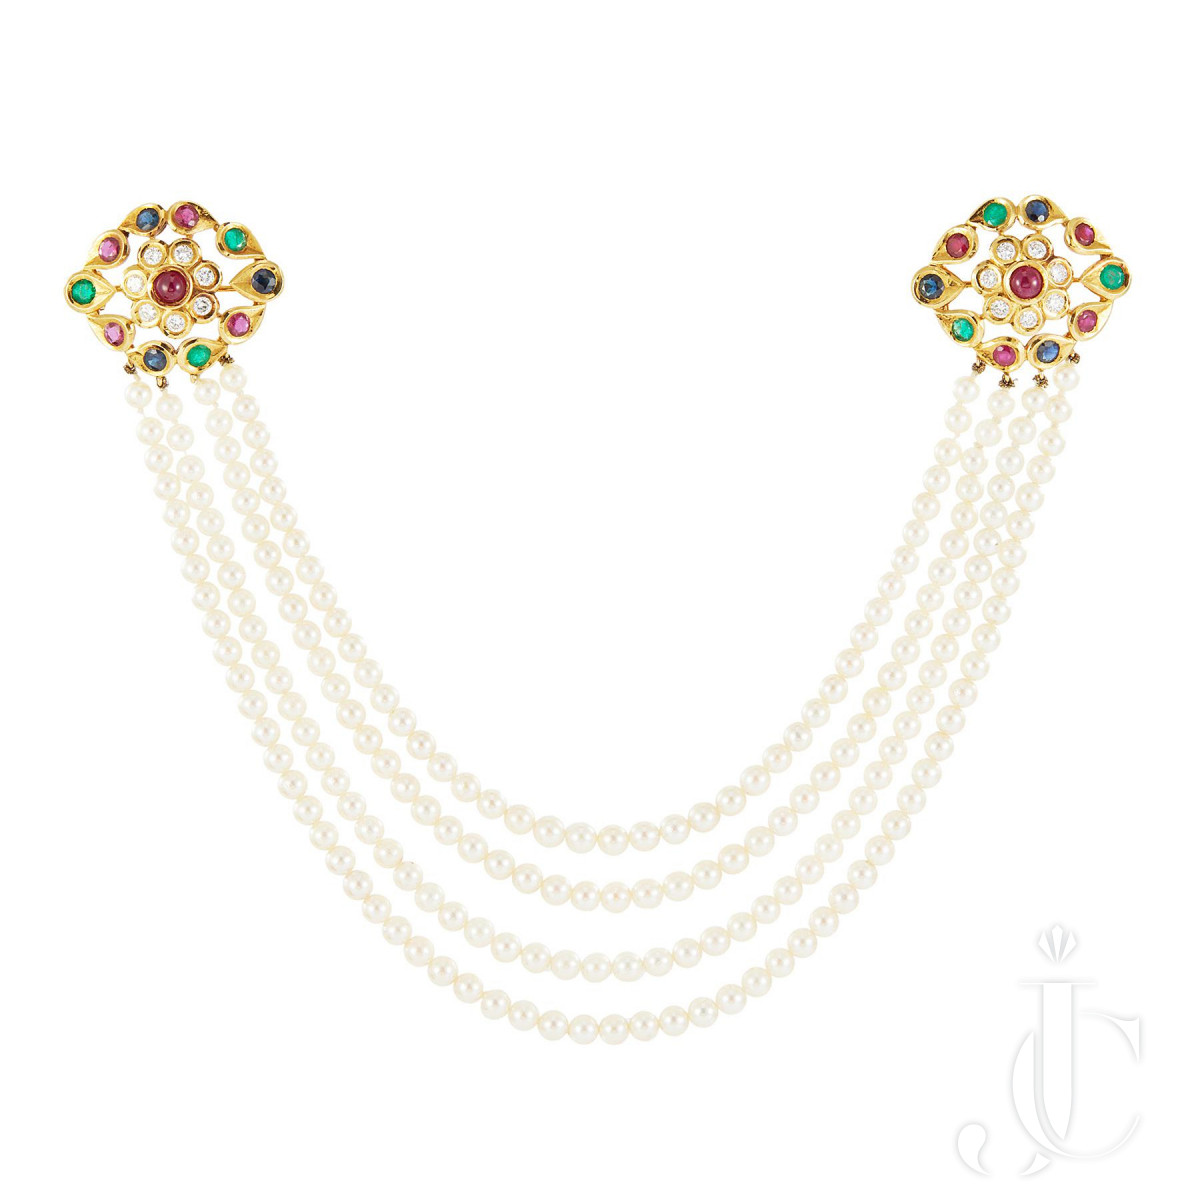 18k gold, coloured stones and pearls brooch, Cartier Paris